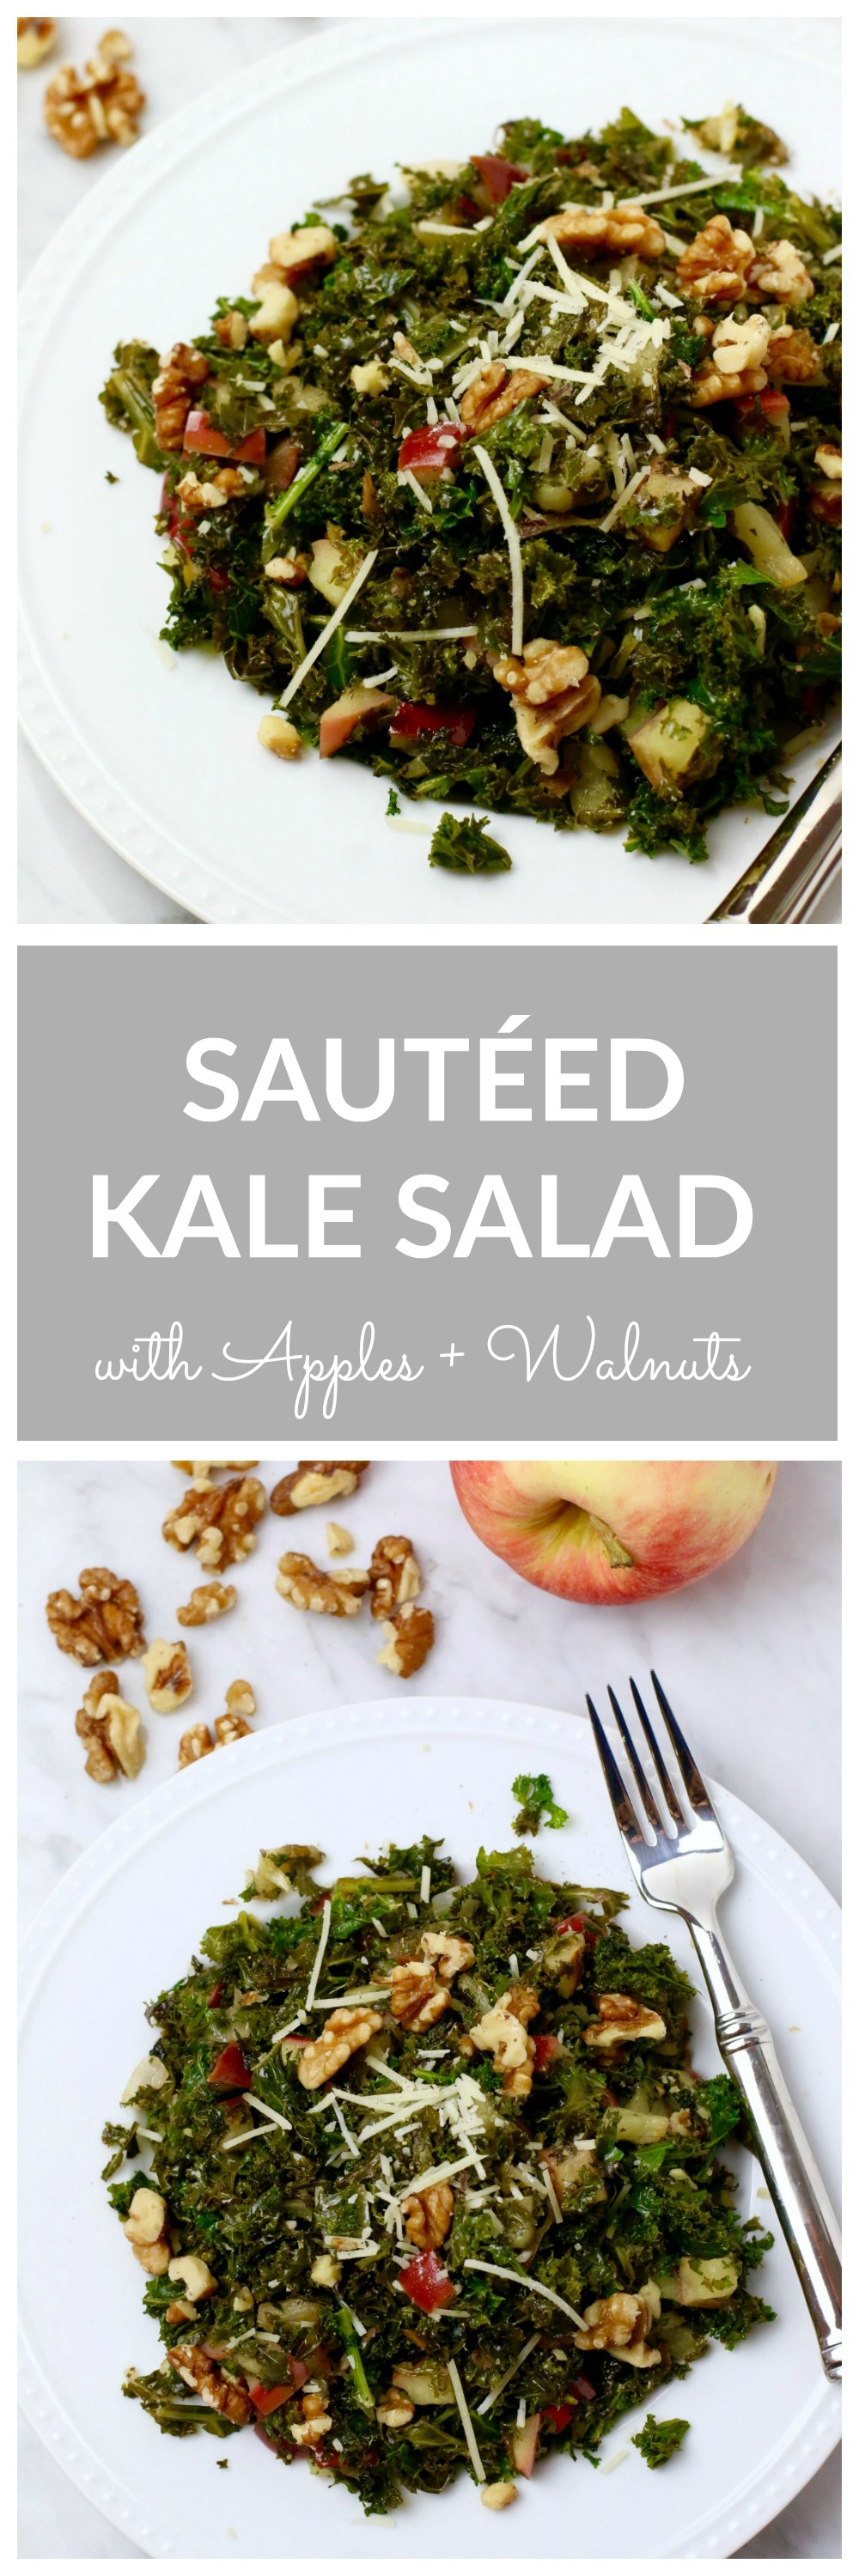 sauteed-kale-salad-with-walnuts-and-apples